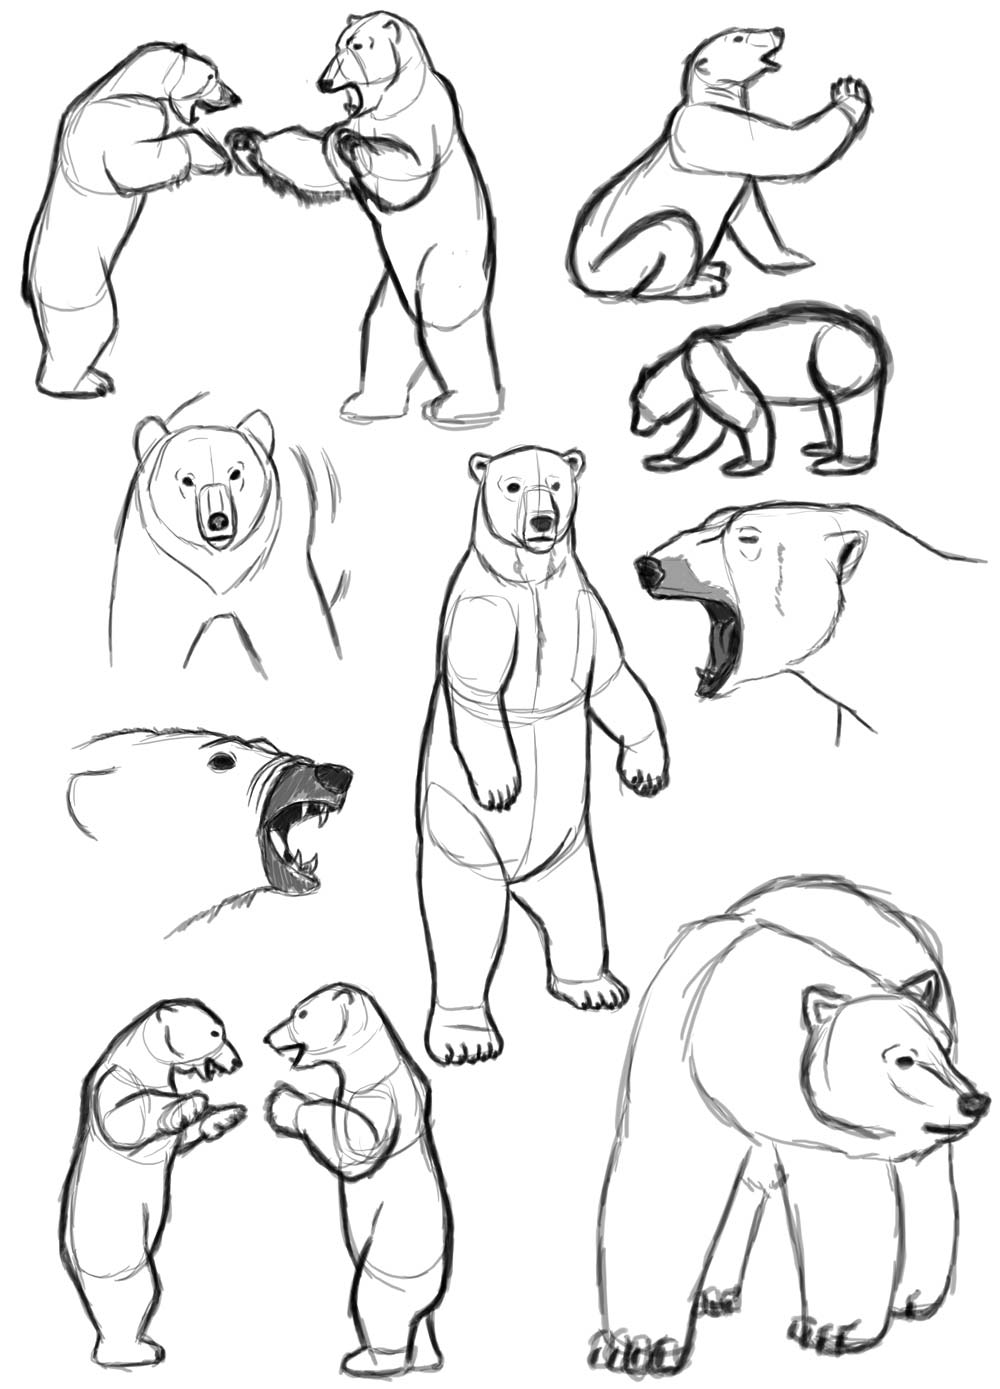 Polar bear drawing references